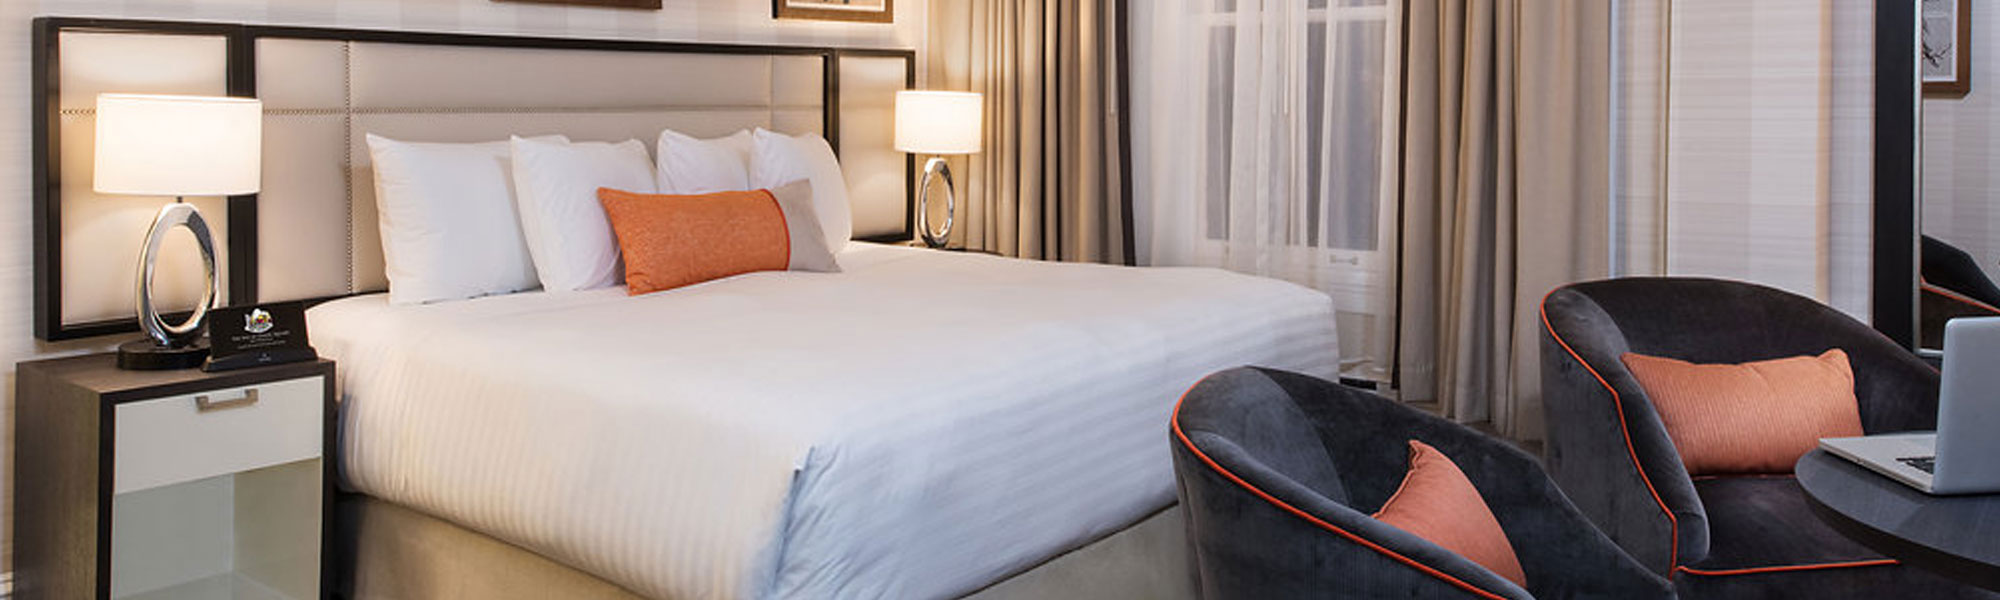 Extended Stay Package at The Inn at Union Square San Francisco - A Greystone Hotel, California